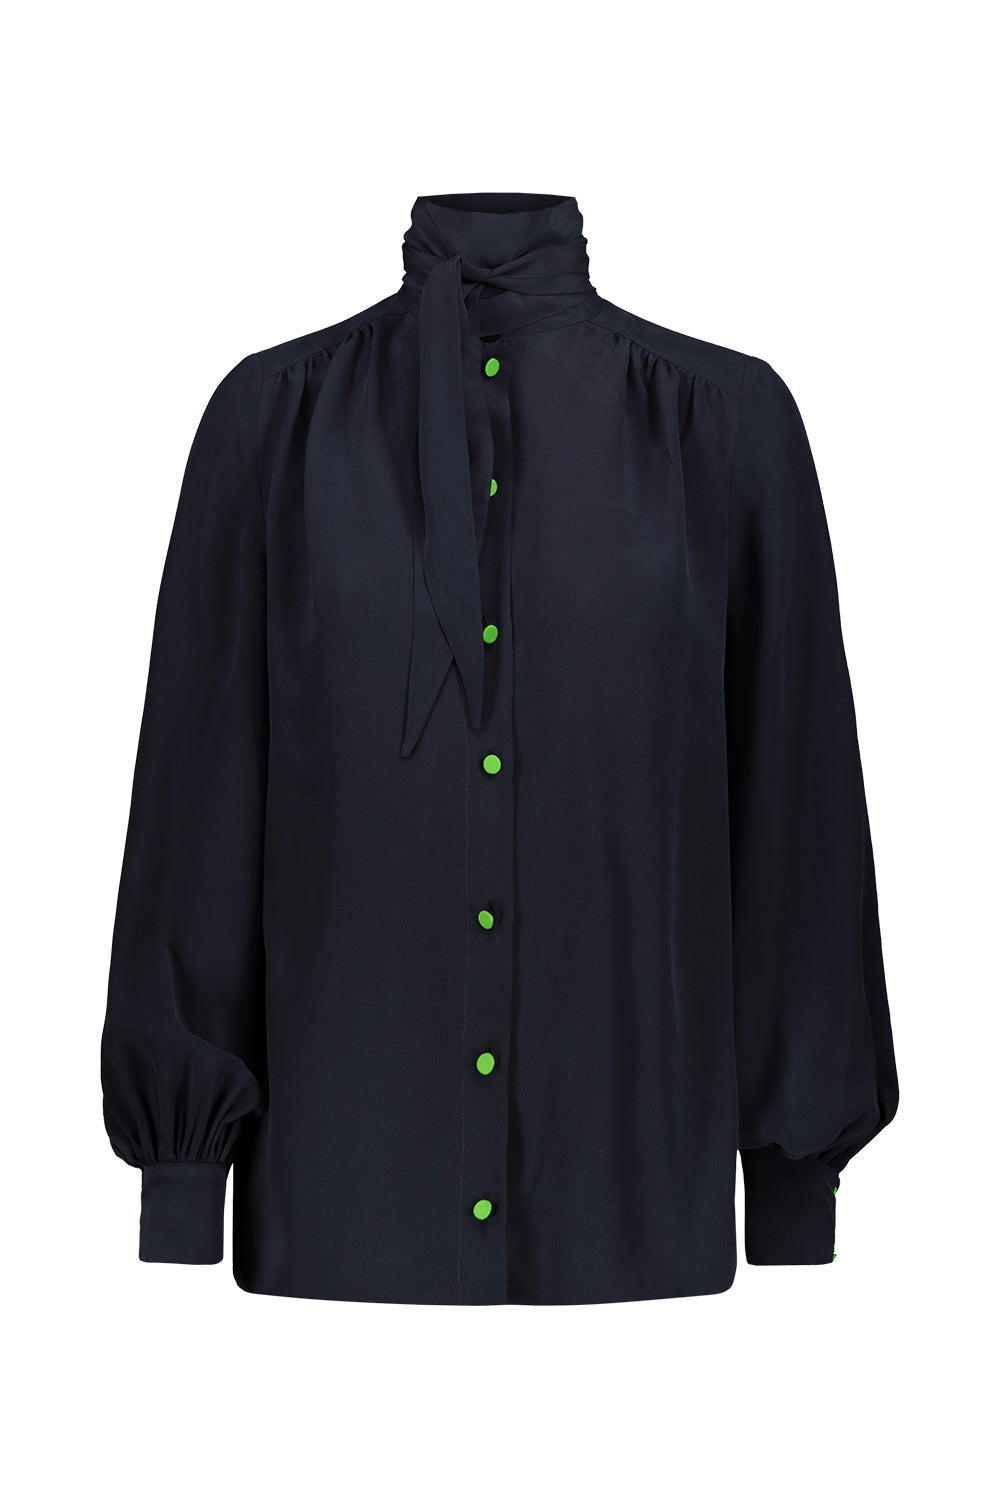 CABRIOLET SHIRT - DEEP BLUE